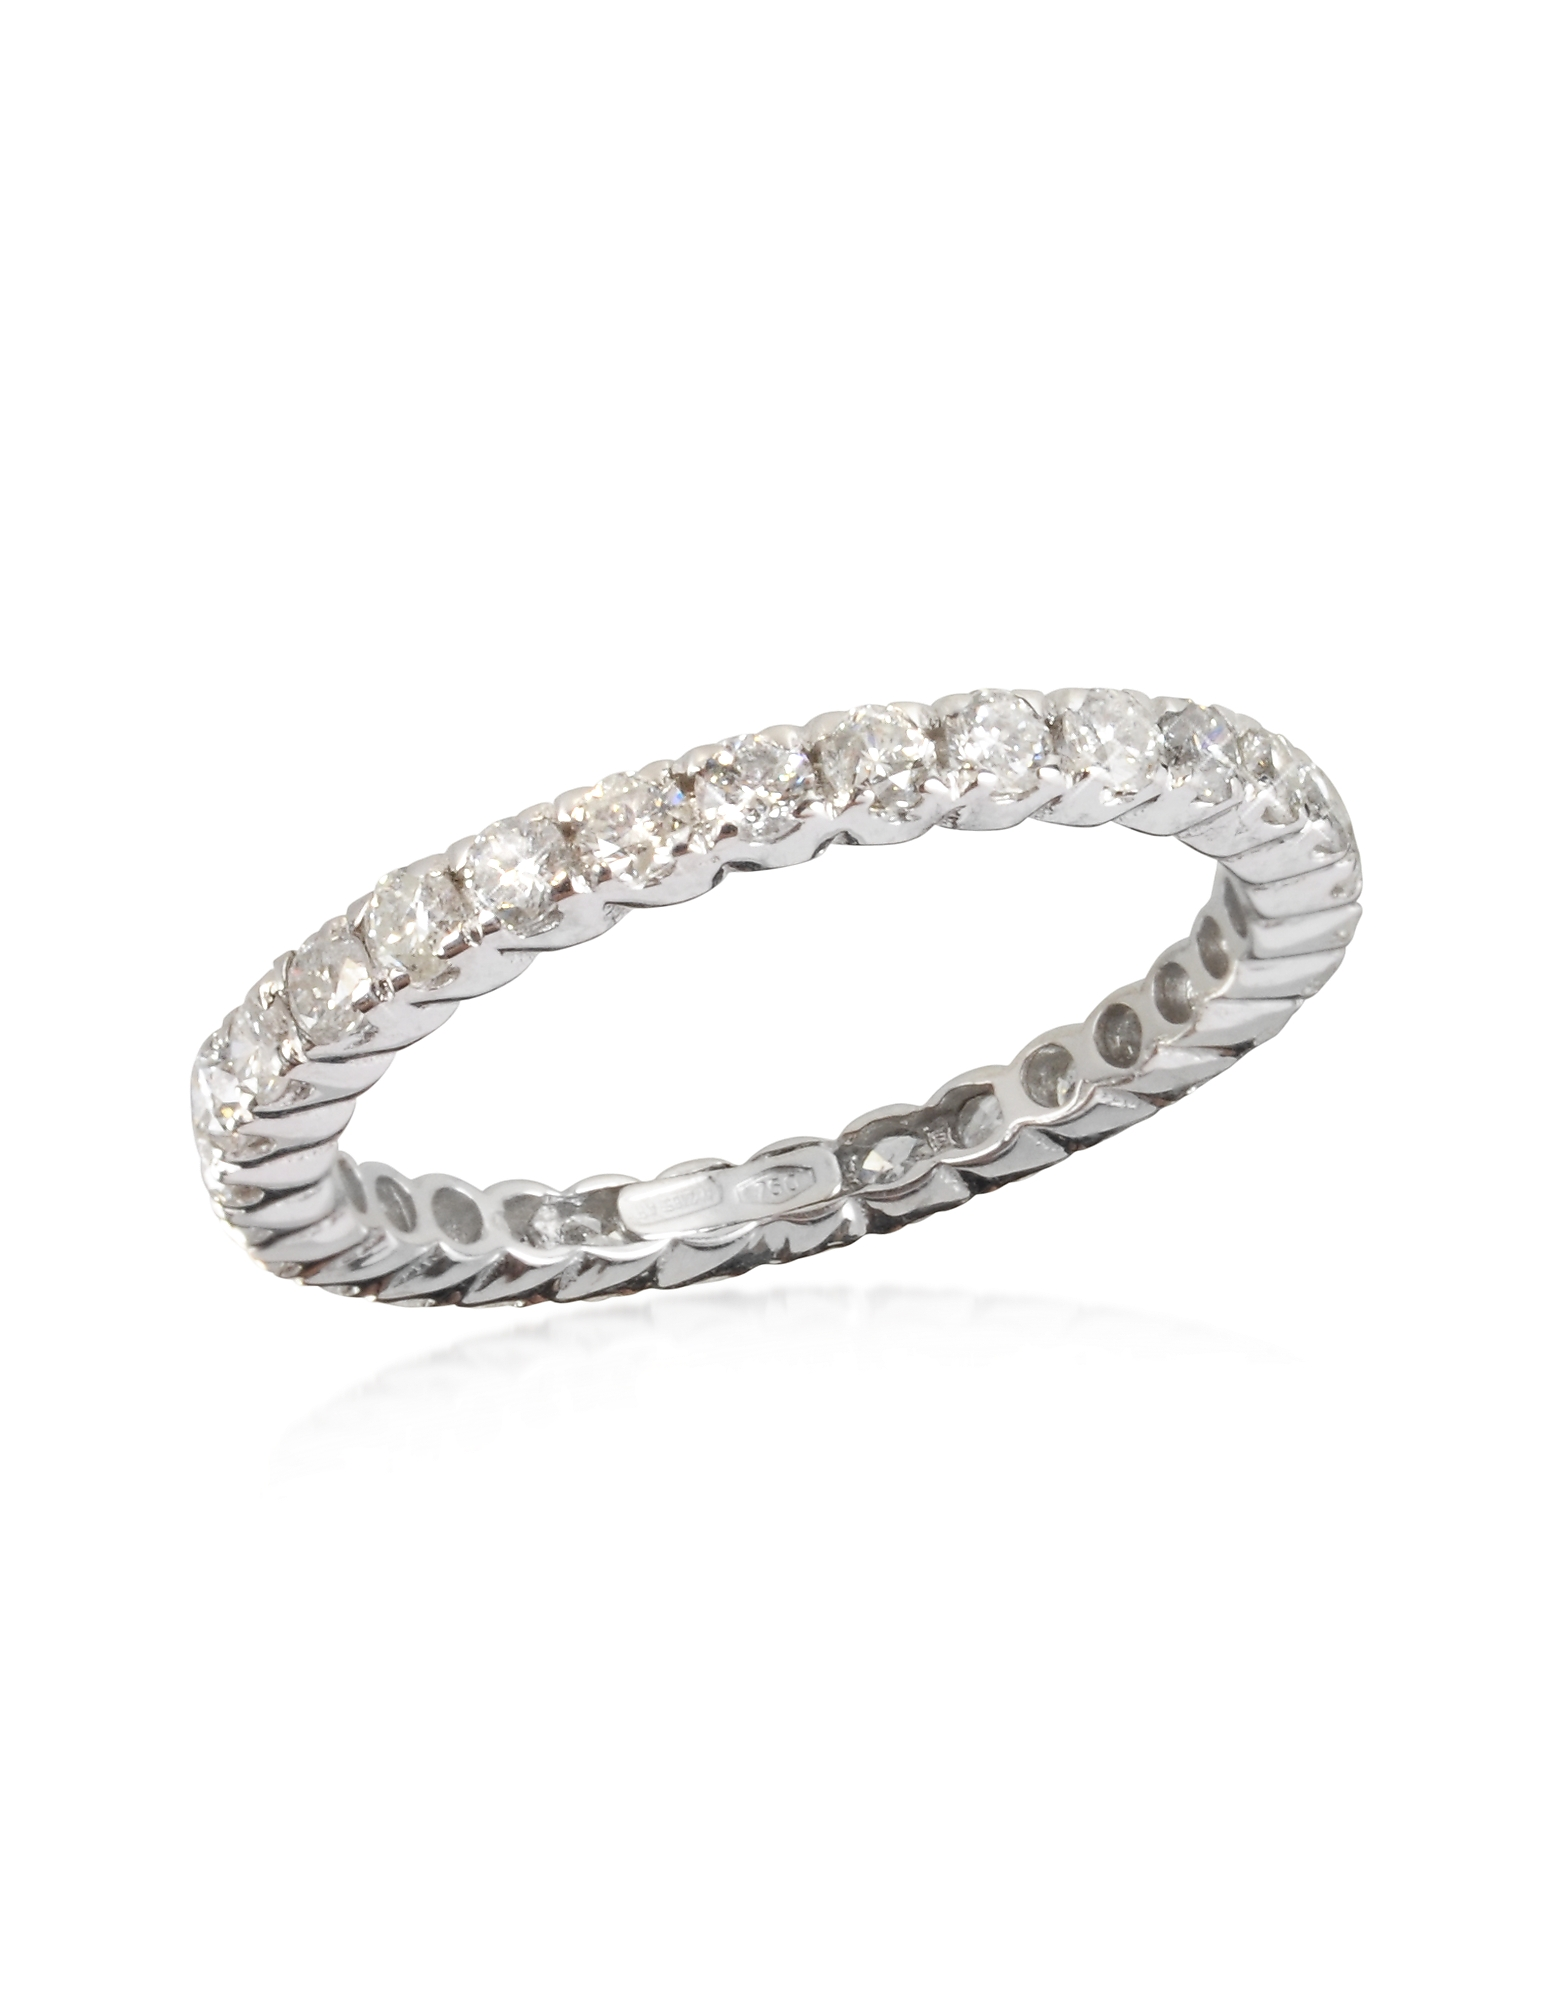 Forzieri Designer Rings, 1.20 ctw Diamond 18K White Gold Eternity Band